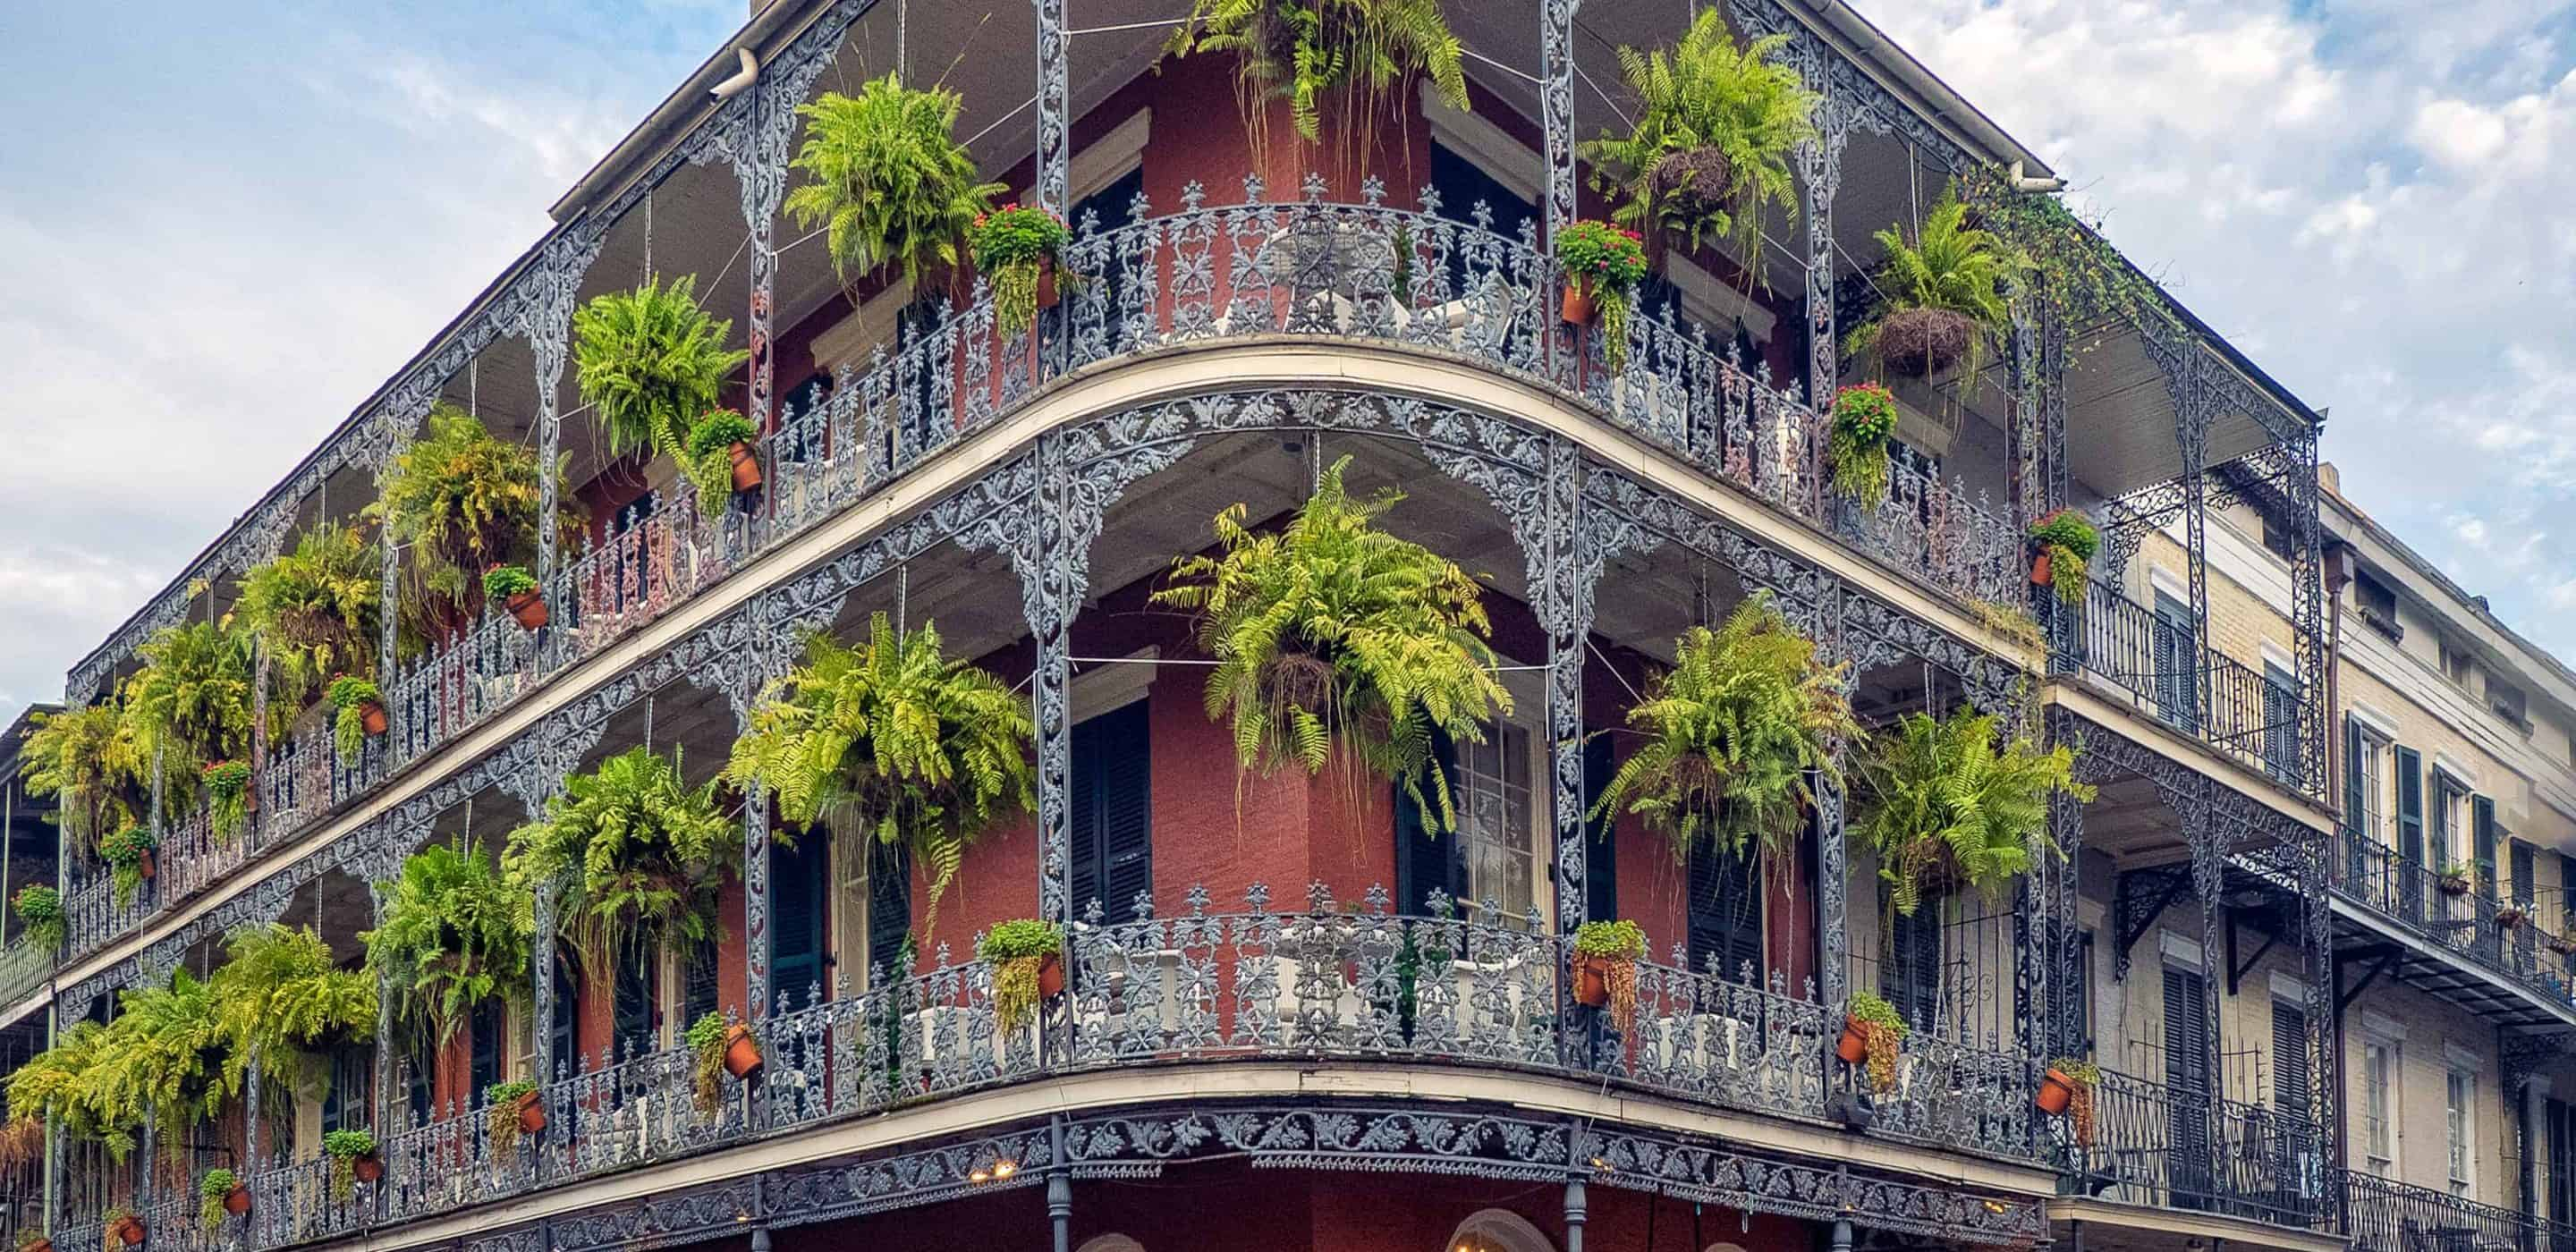 Three-story building in New Orleans, Louisiana